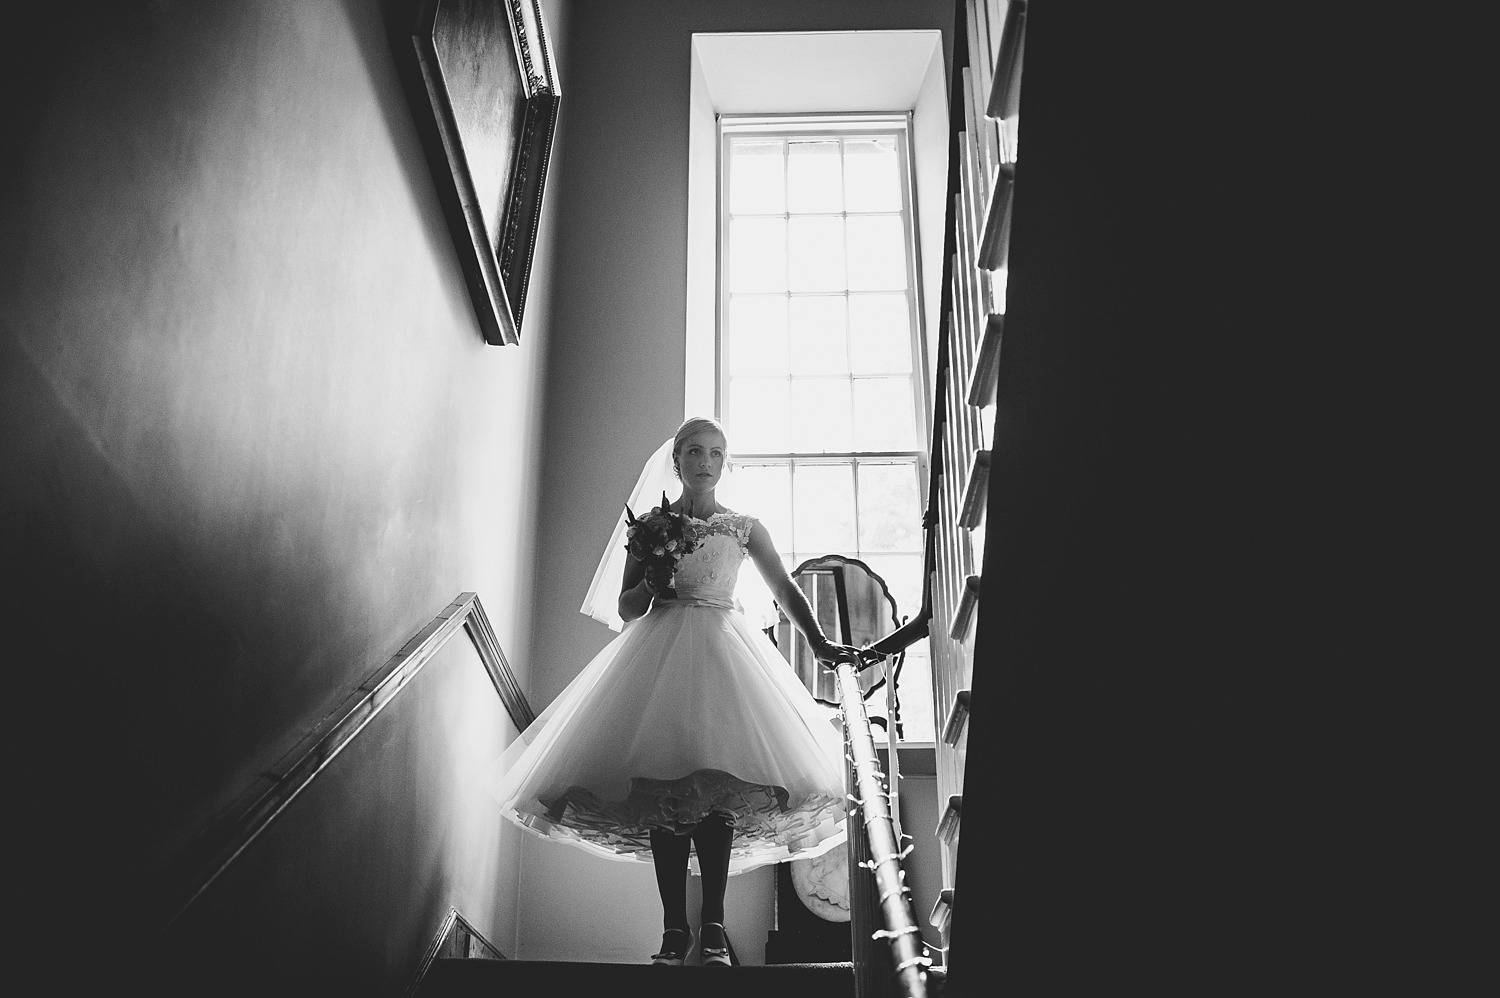 1035-lisa-devine-photography-alternative-stylish-creative-wedding-photography-glasgow-scotland-uk.JPG